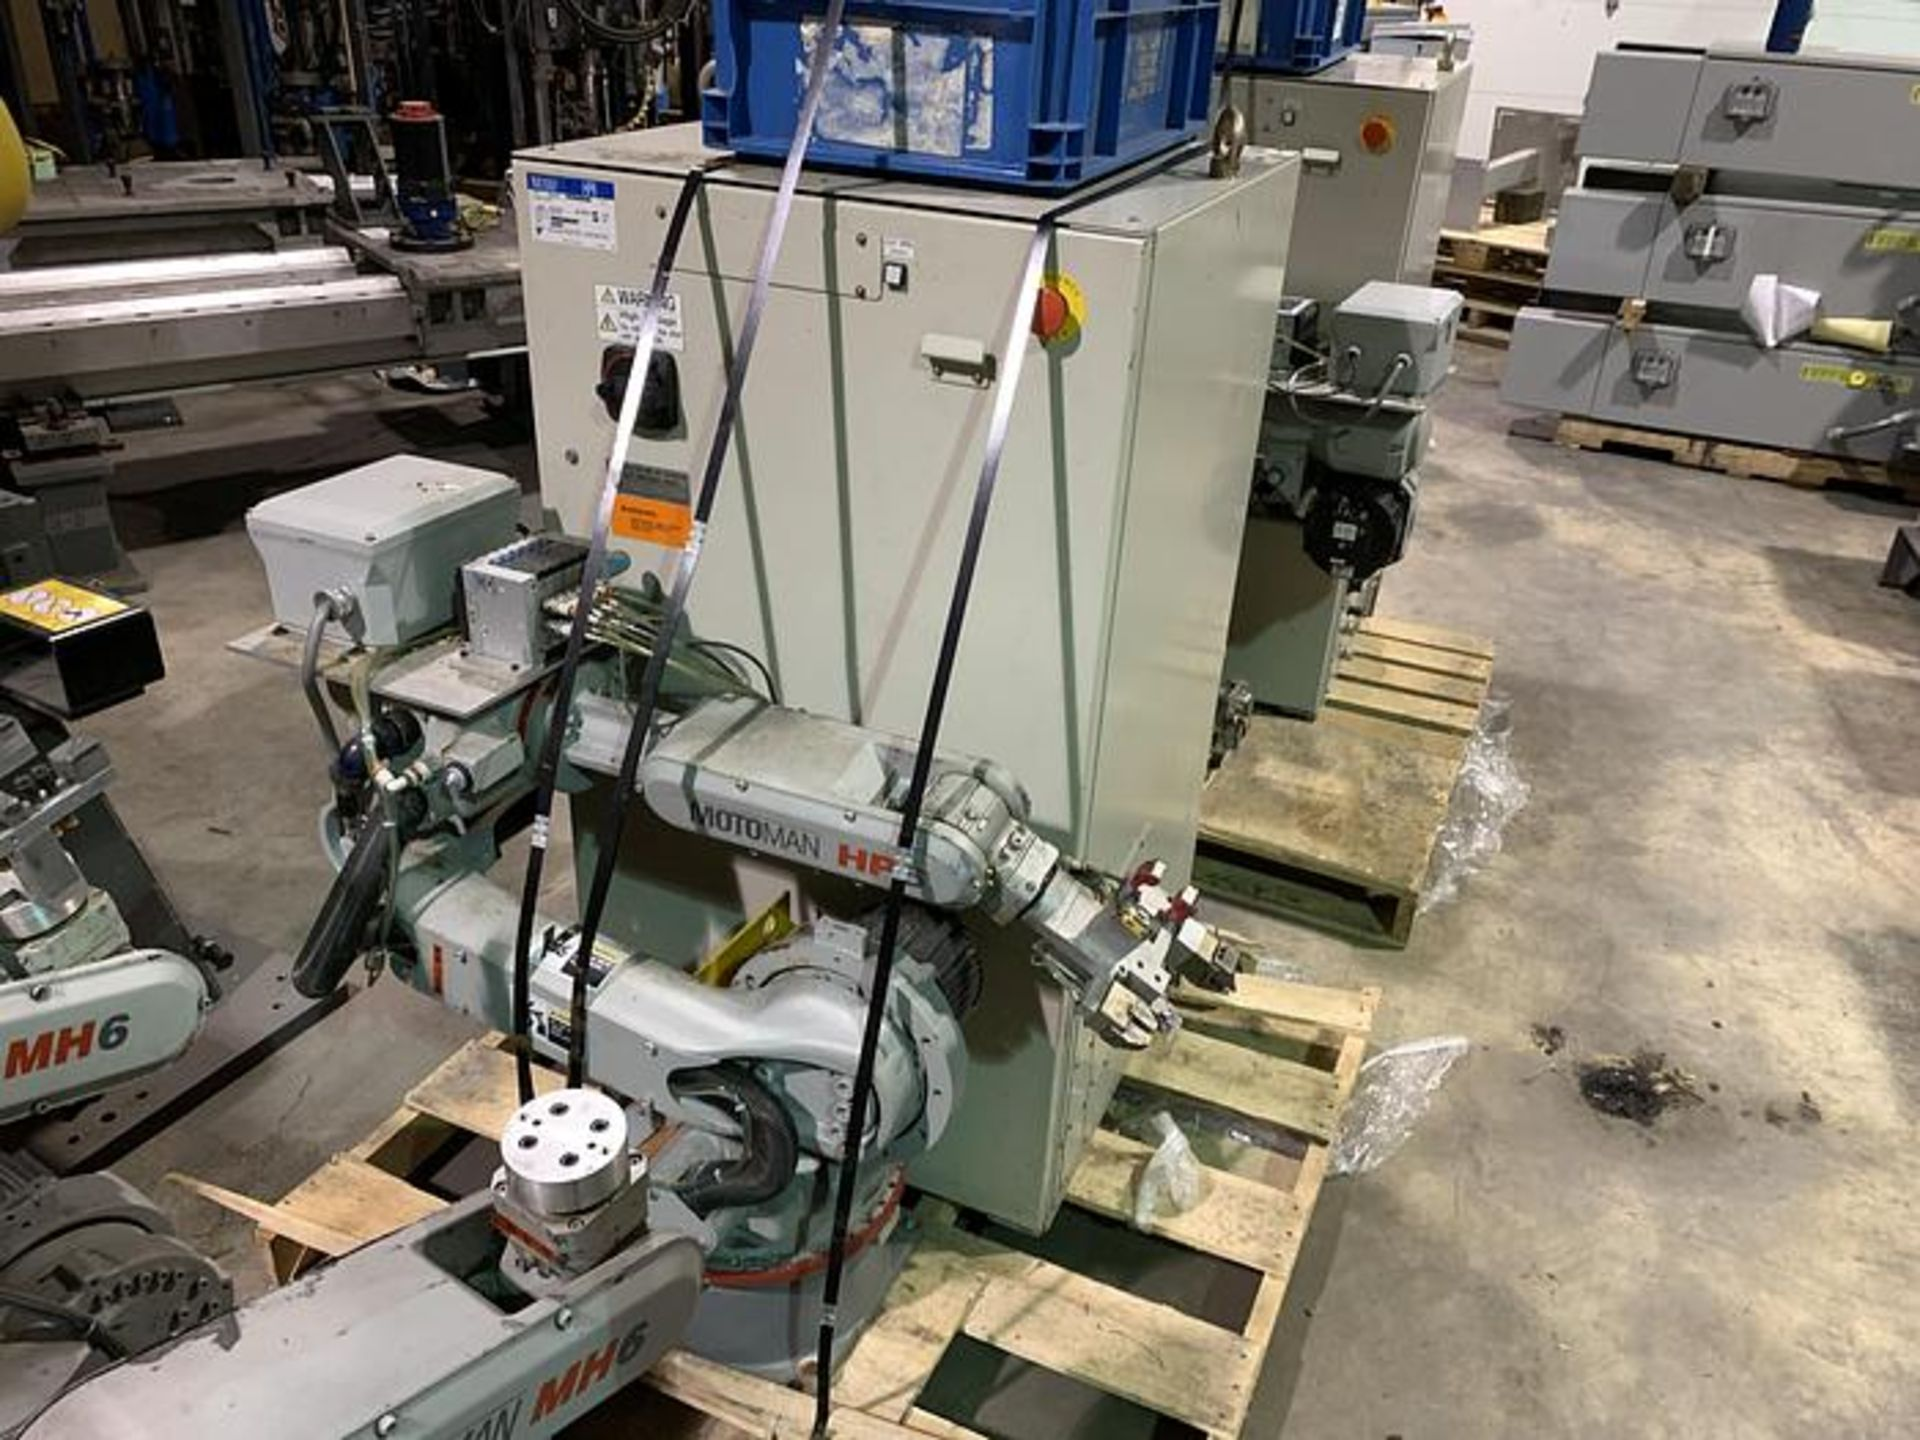 MOTOMAN ROBOT HP6 6KG X 1378 MM REACH NX100 CONTROLLER, CABLES & TEACH, SN S4M230-1-6, YEAR 04/2005 - Image 2 of 3